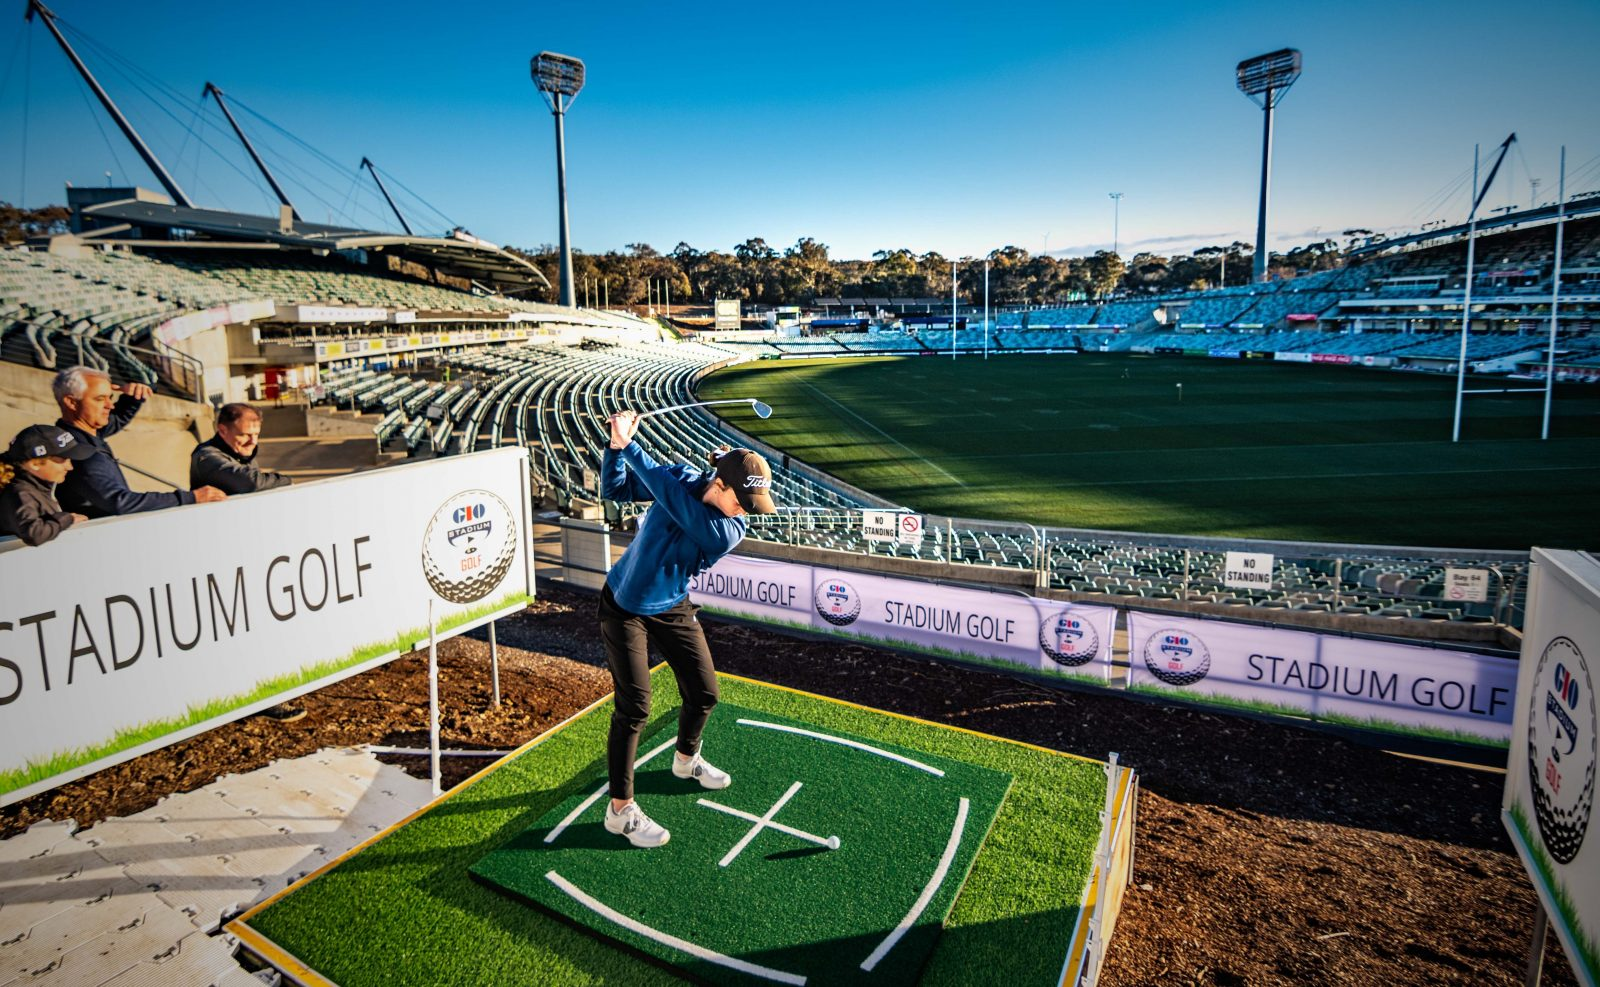 Stadium Golf is for all ages, bring the family along and take advantage of the family ticket price.